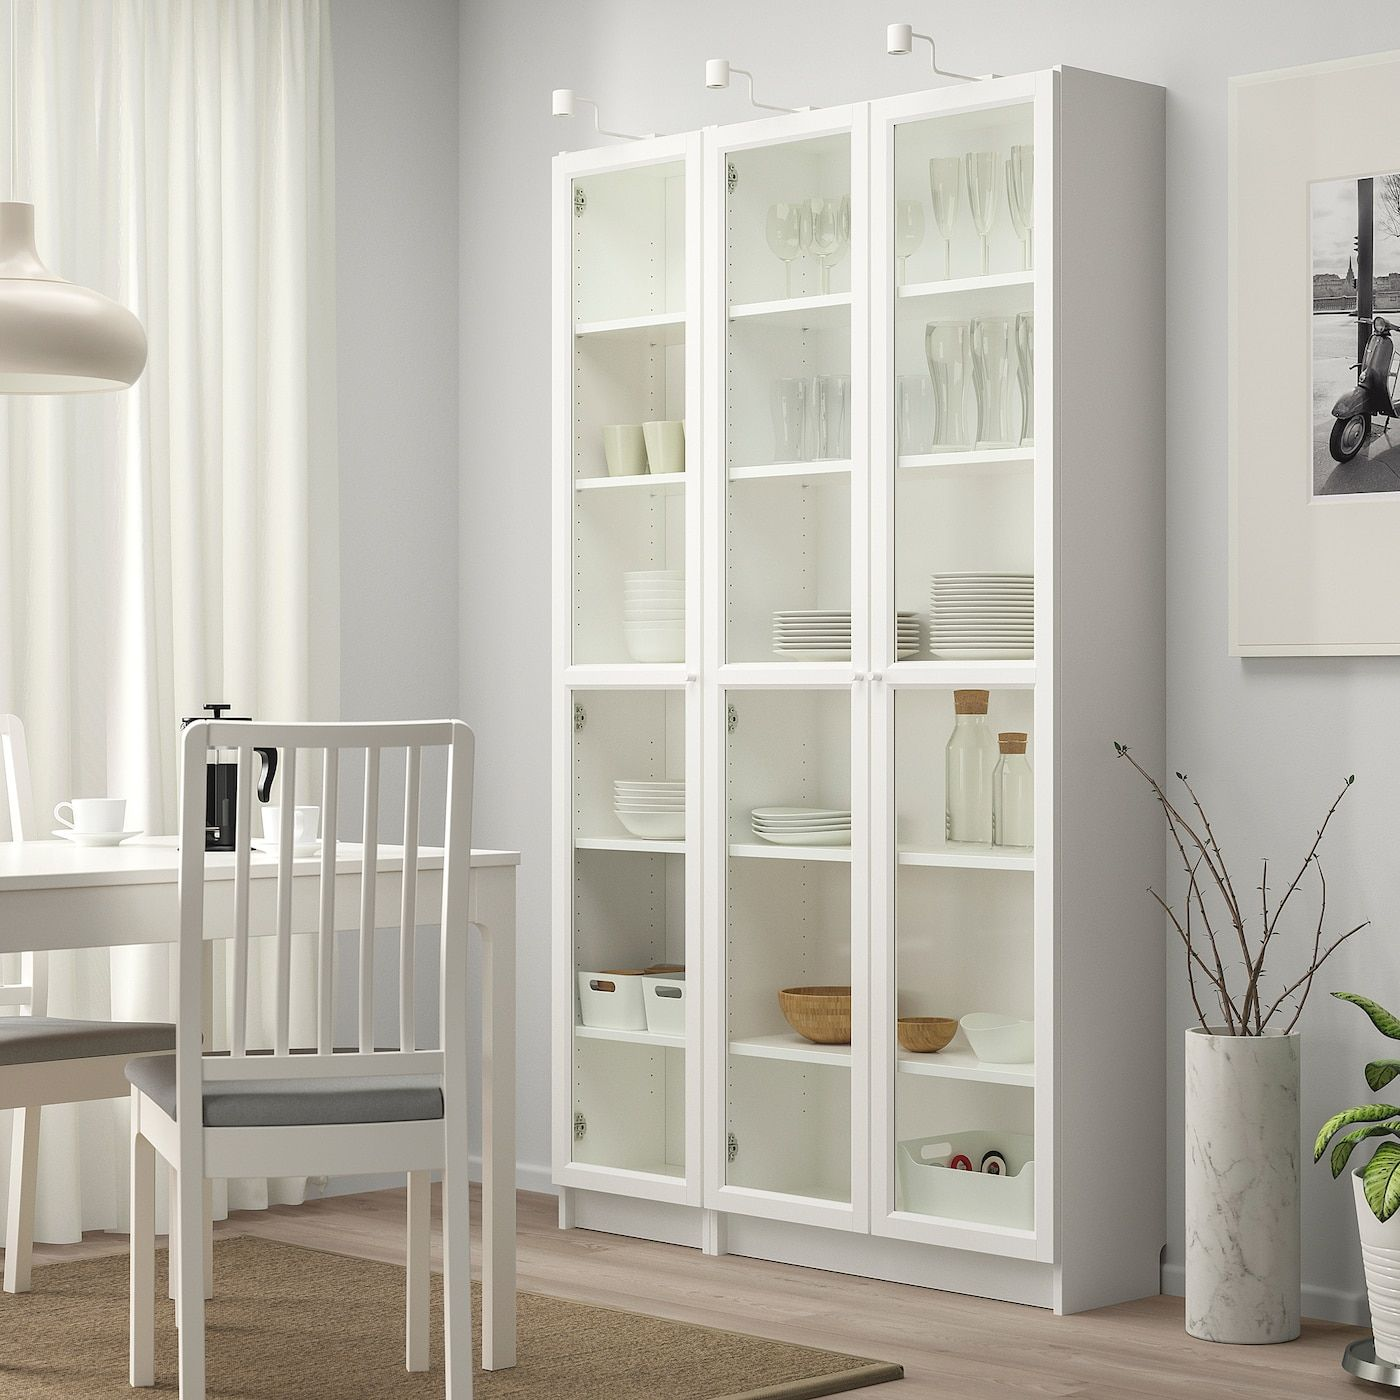 Billy Oxberg Libreria Con Ante A Vetro Bianco 120x30x202 Cm Ikea It Bookcase With Glass Doors Glass Bookcase Glass Shelves Kitchen